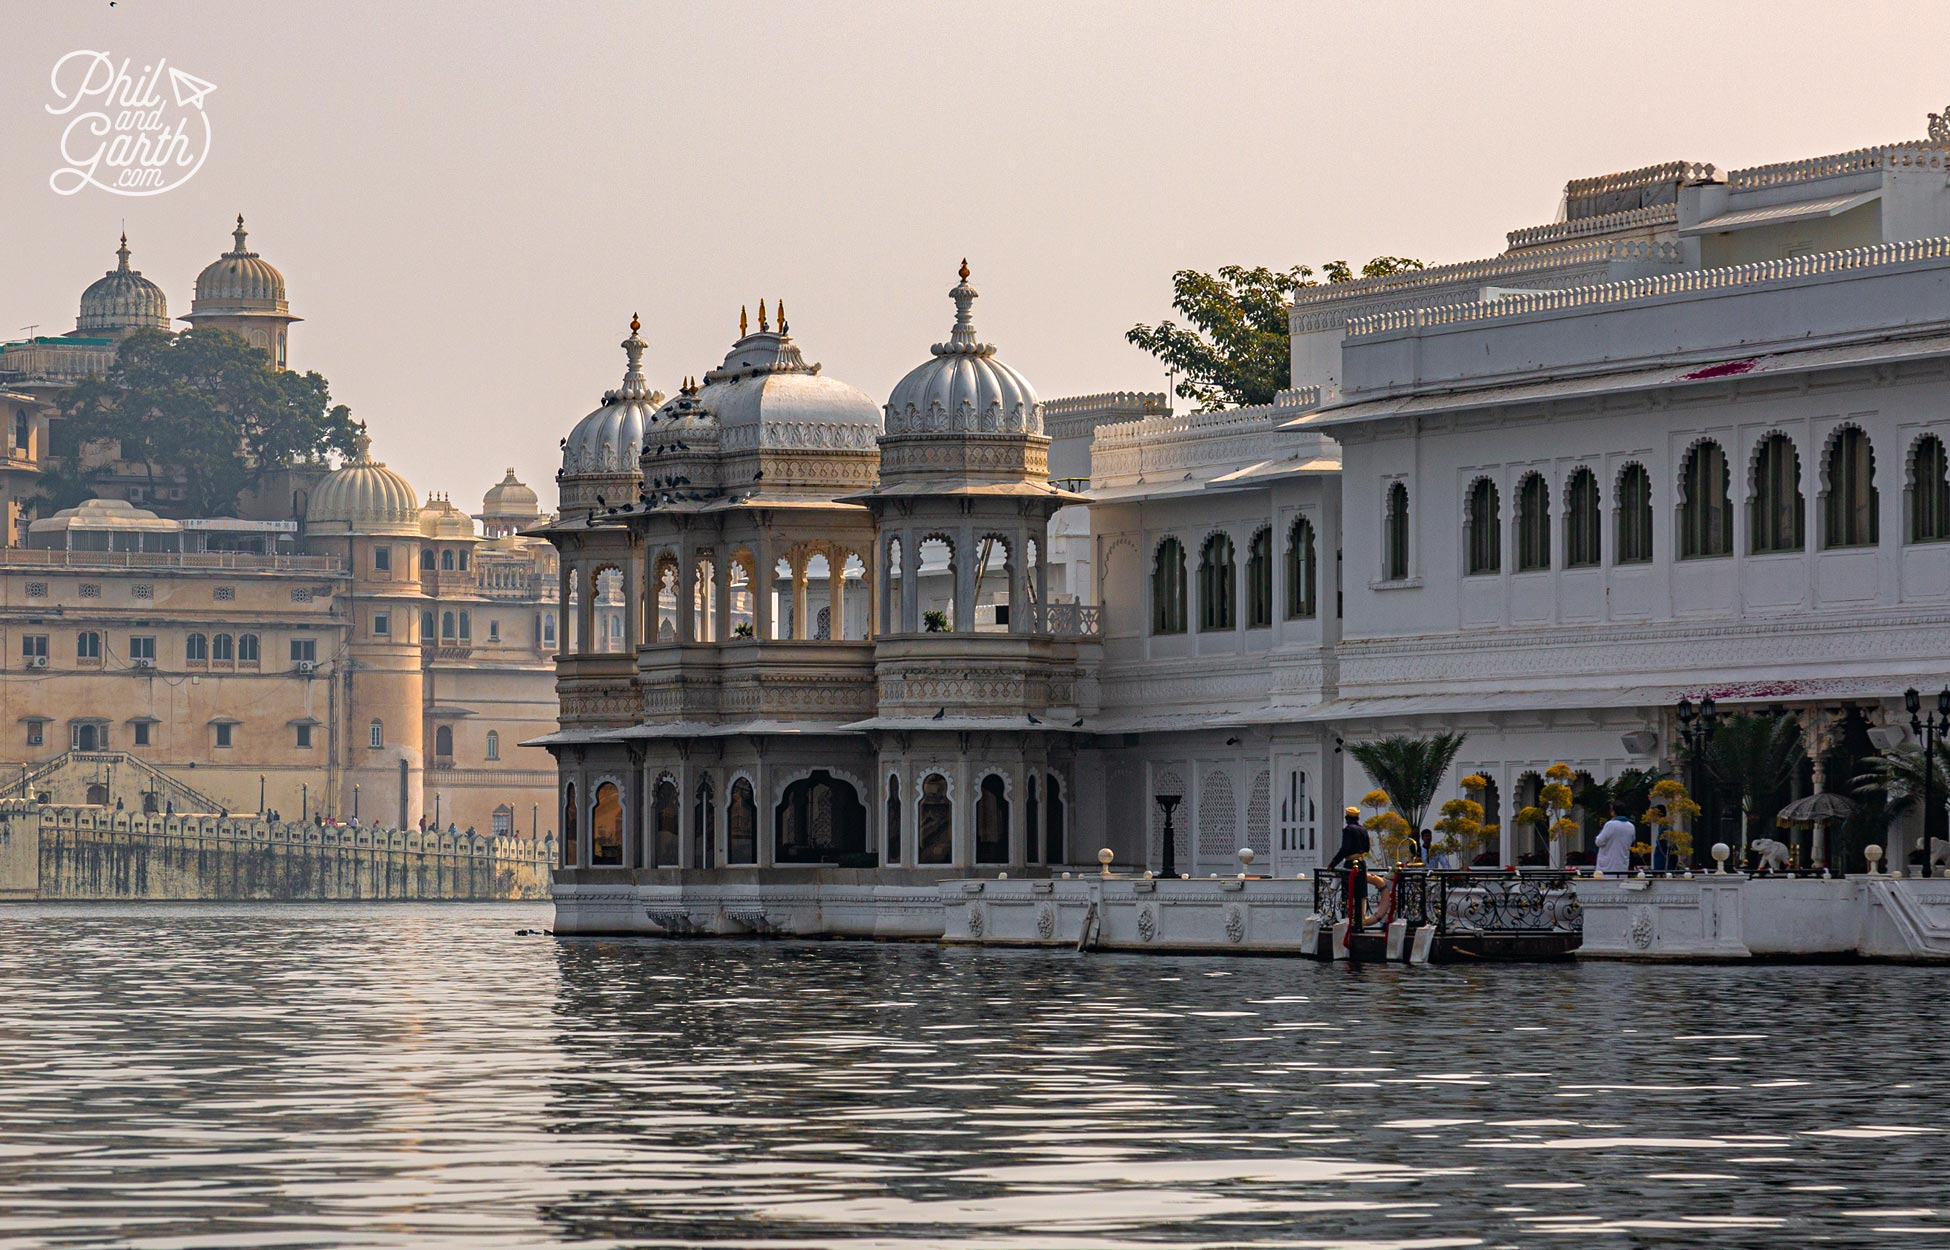 Old Palaces appear to float on the shimmering water